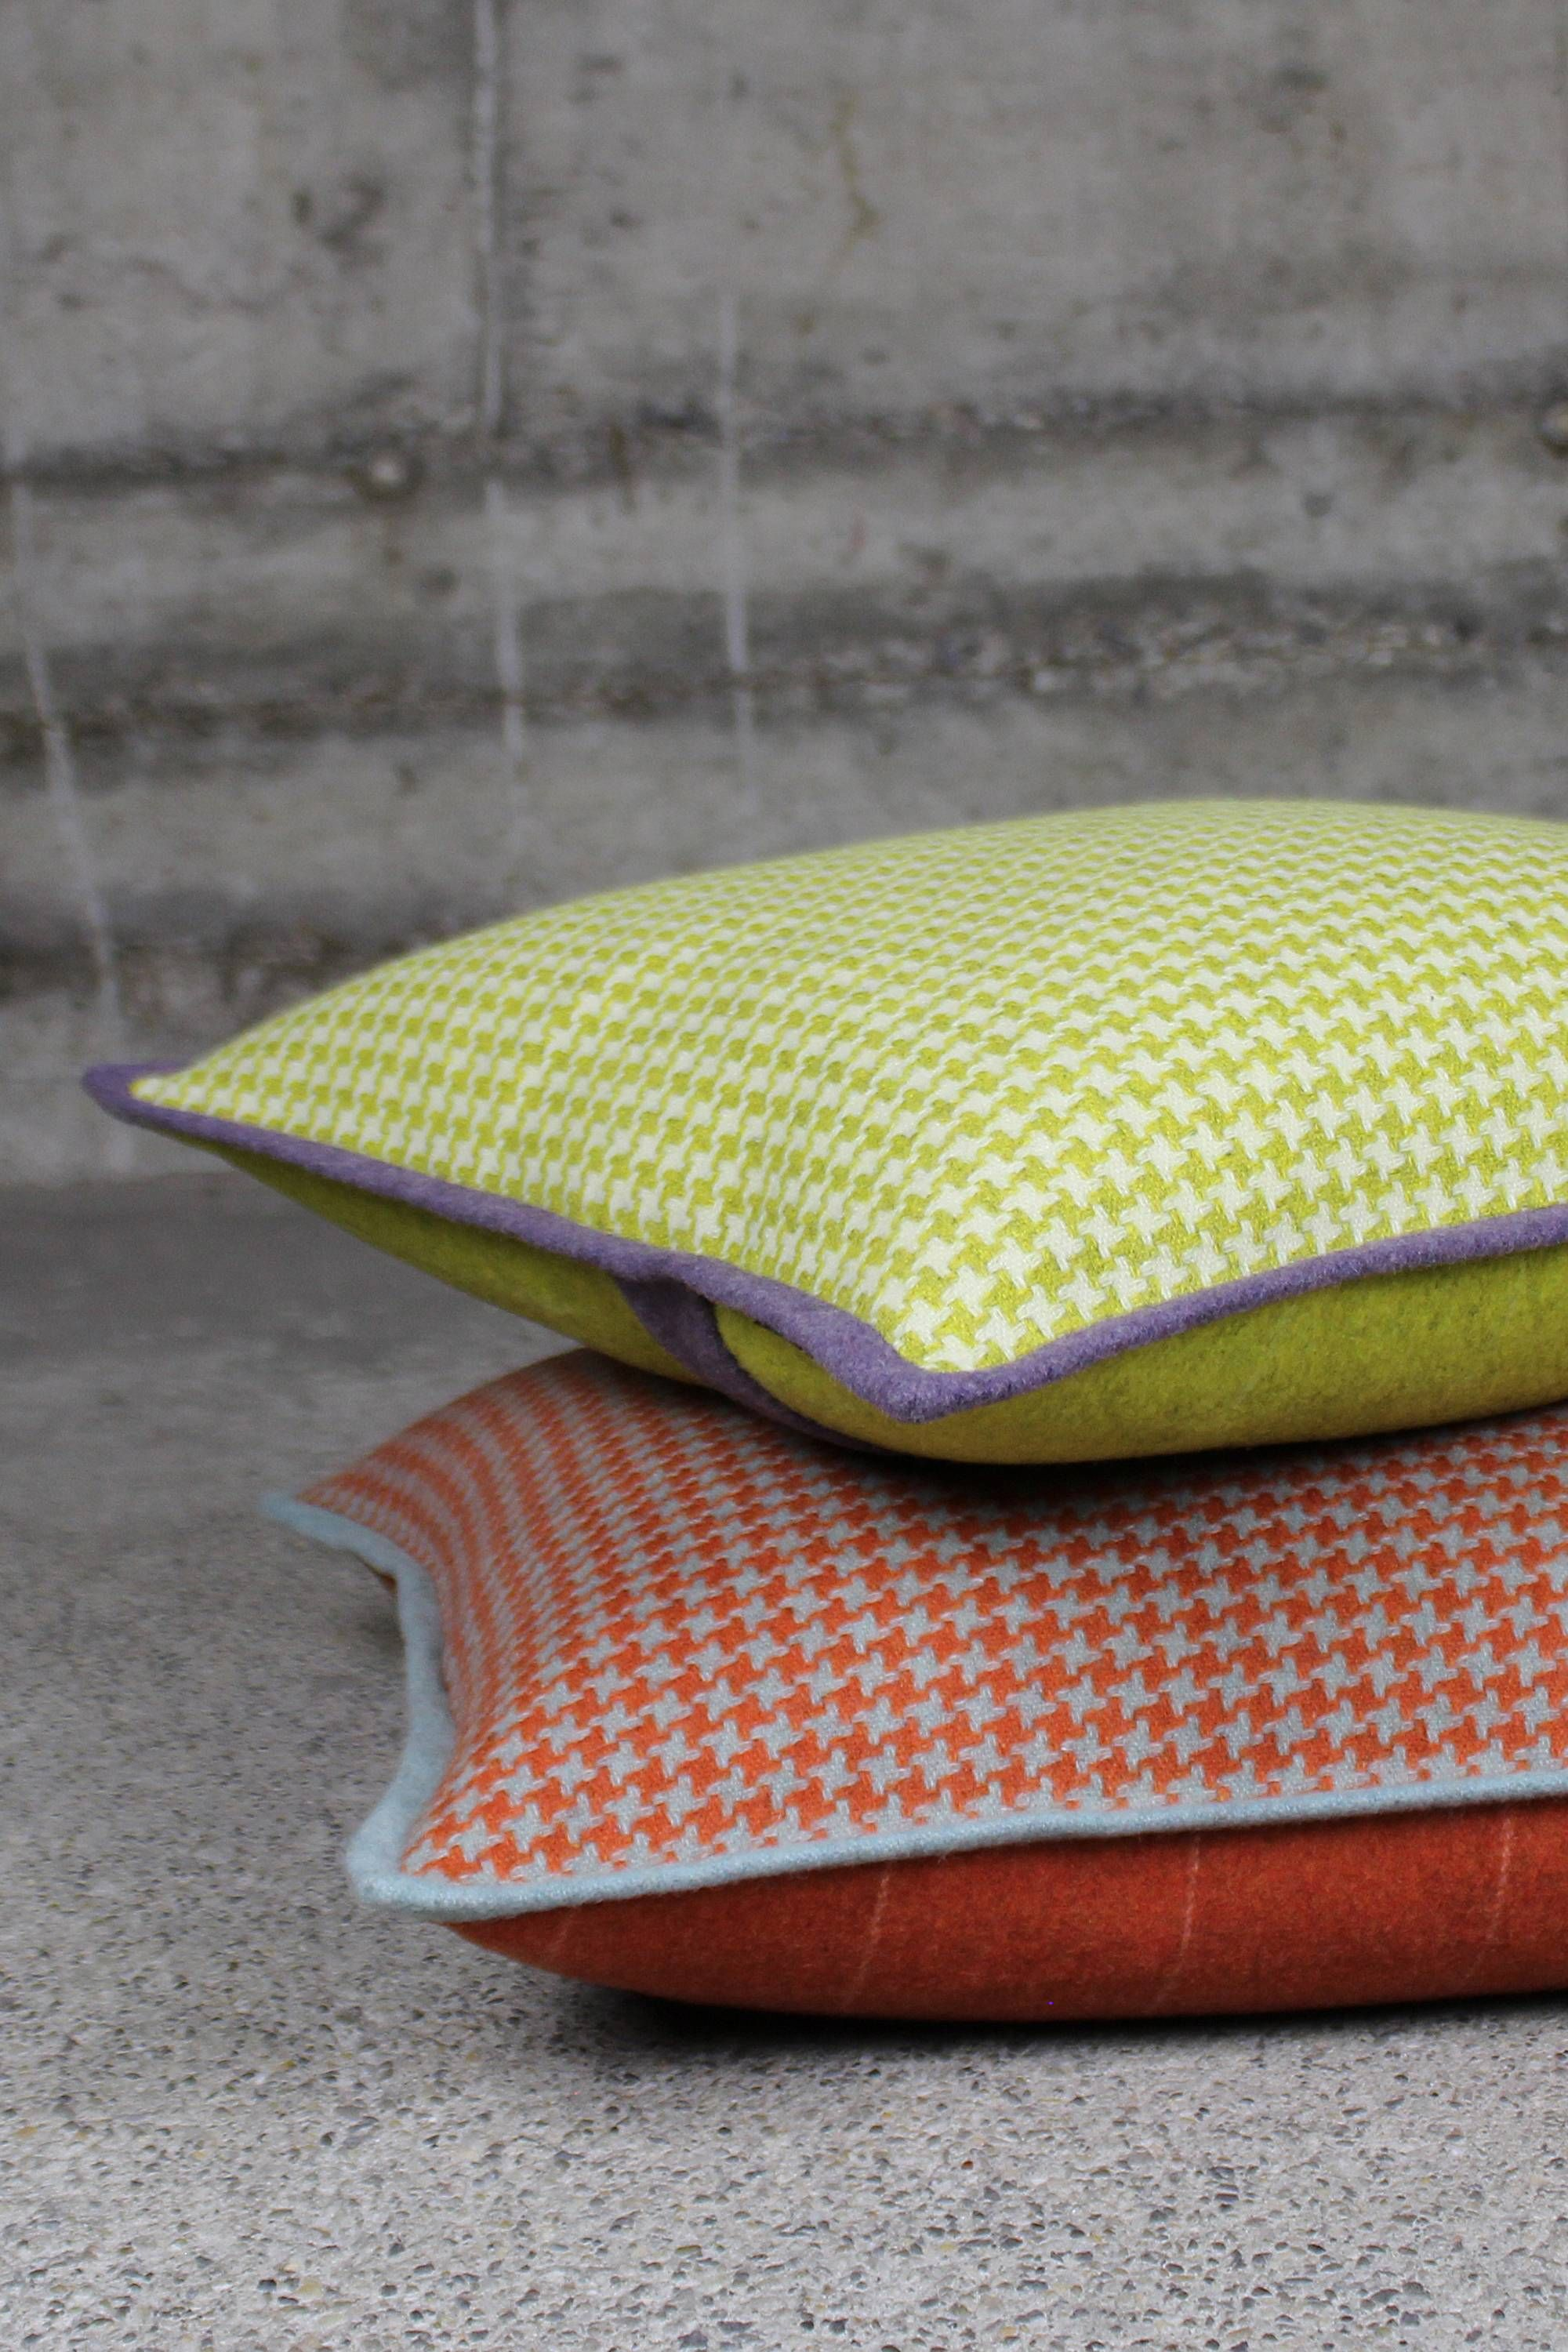 Farben des wohnraums 2018 cushion cavallo coco the cushion cavallo coco captivates with a lime